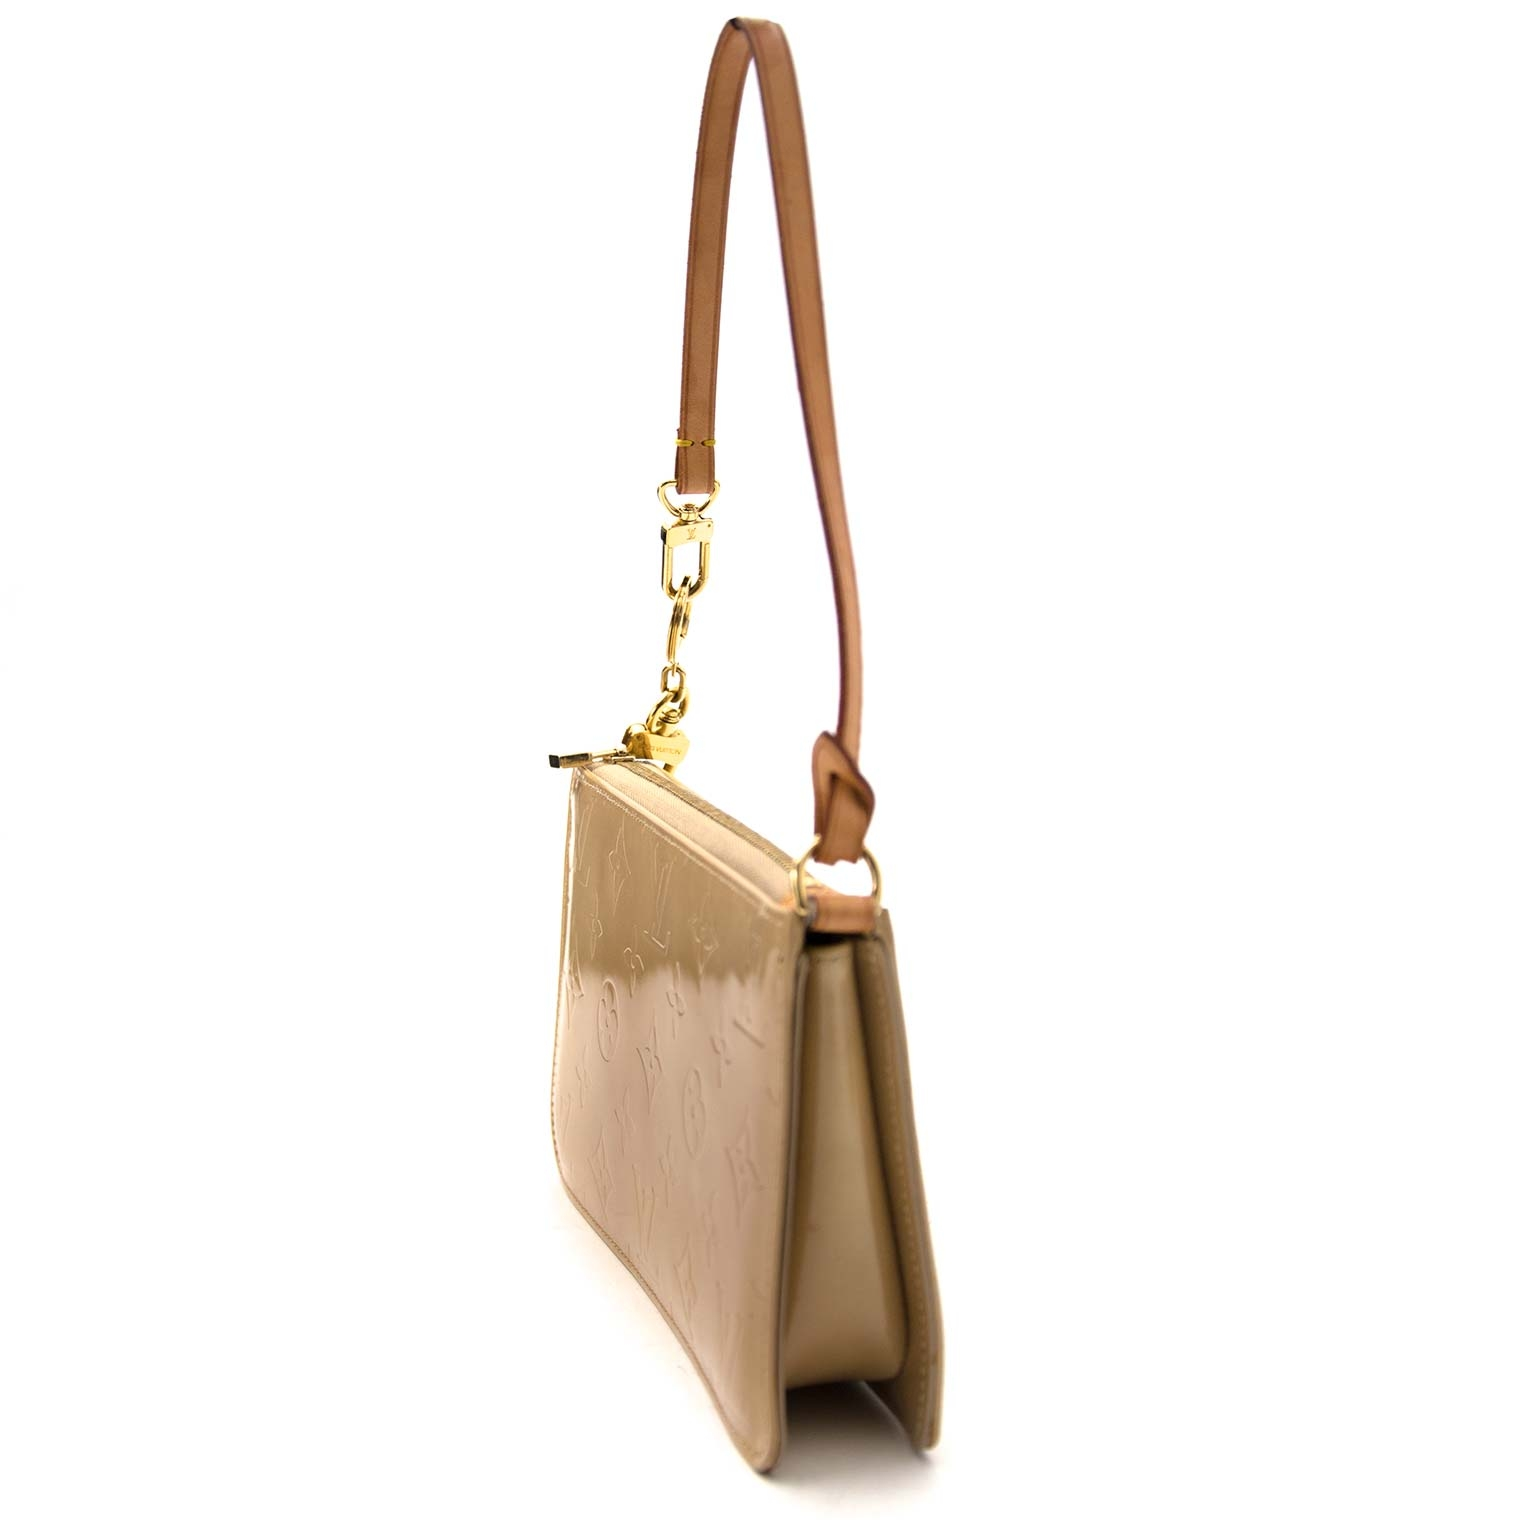 Louis Vuitton Beige Vernis Lexington Pochette Buy authentic secondhand Louis Vuitton bags at the right price at Labellov vintage designer webshop. Safe and secure online shopping. Koop authentieke tweedehands Louis Vuitton tassen bij LabelLOV webwinkel